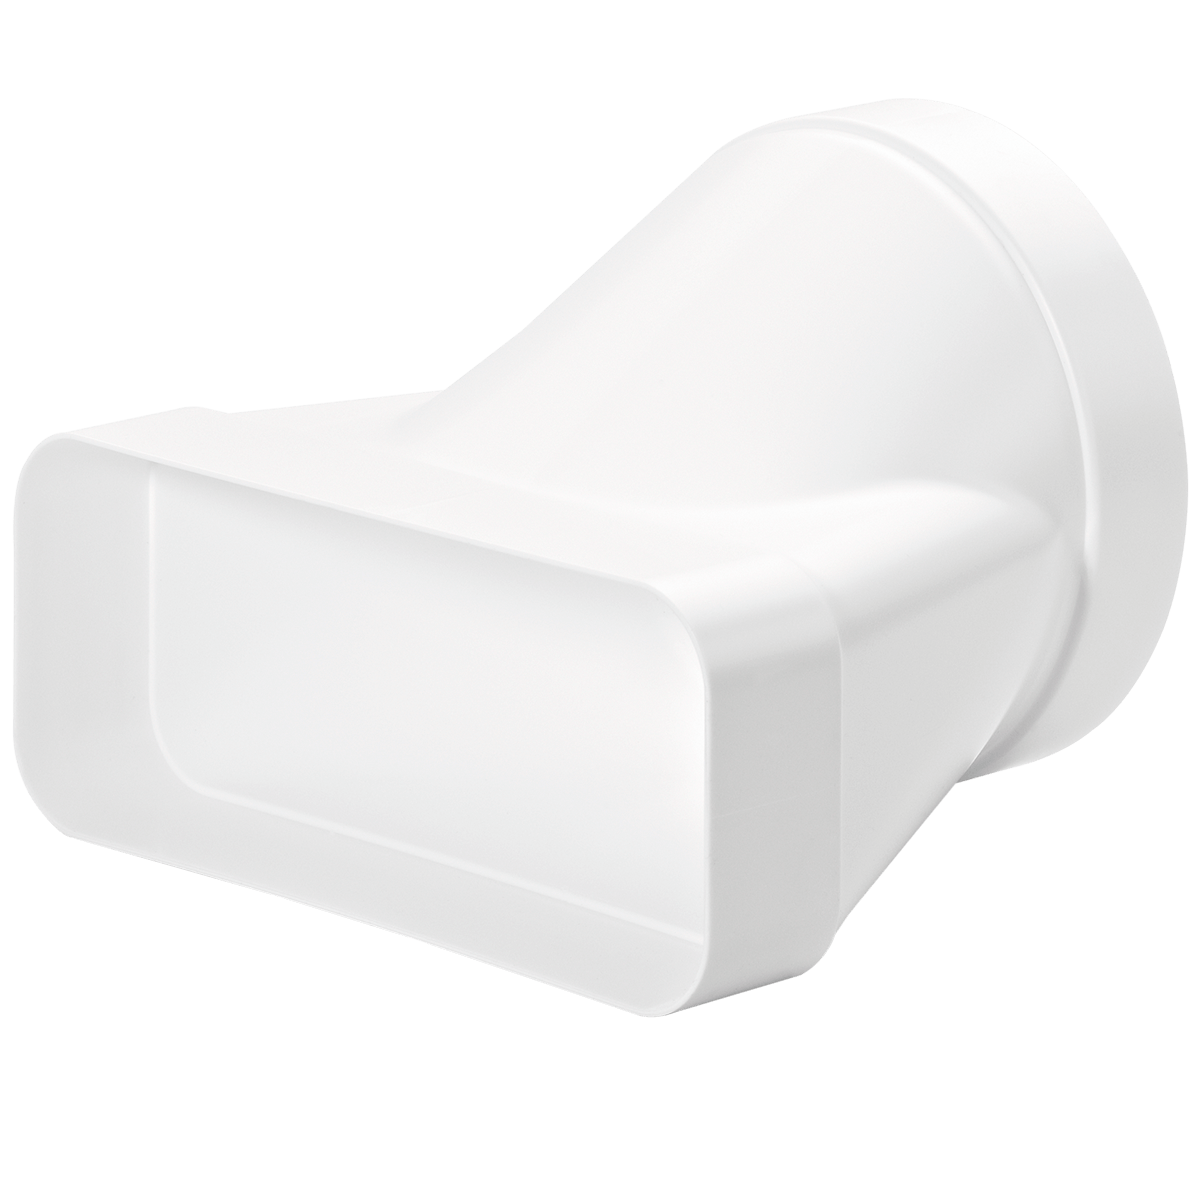 Naber adapteur rond 150 mm vers tubage plat, double femelle